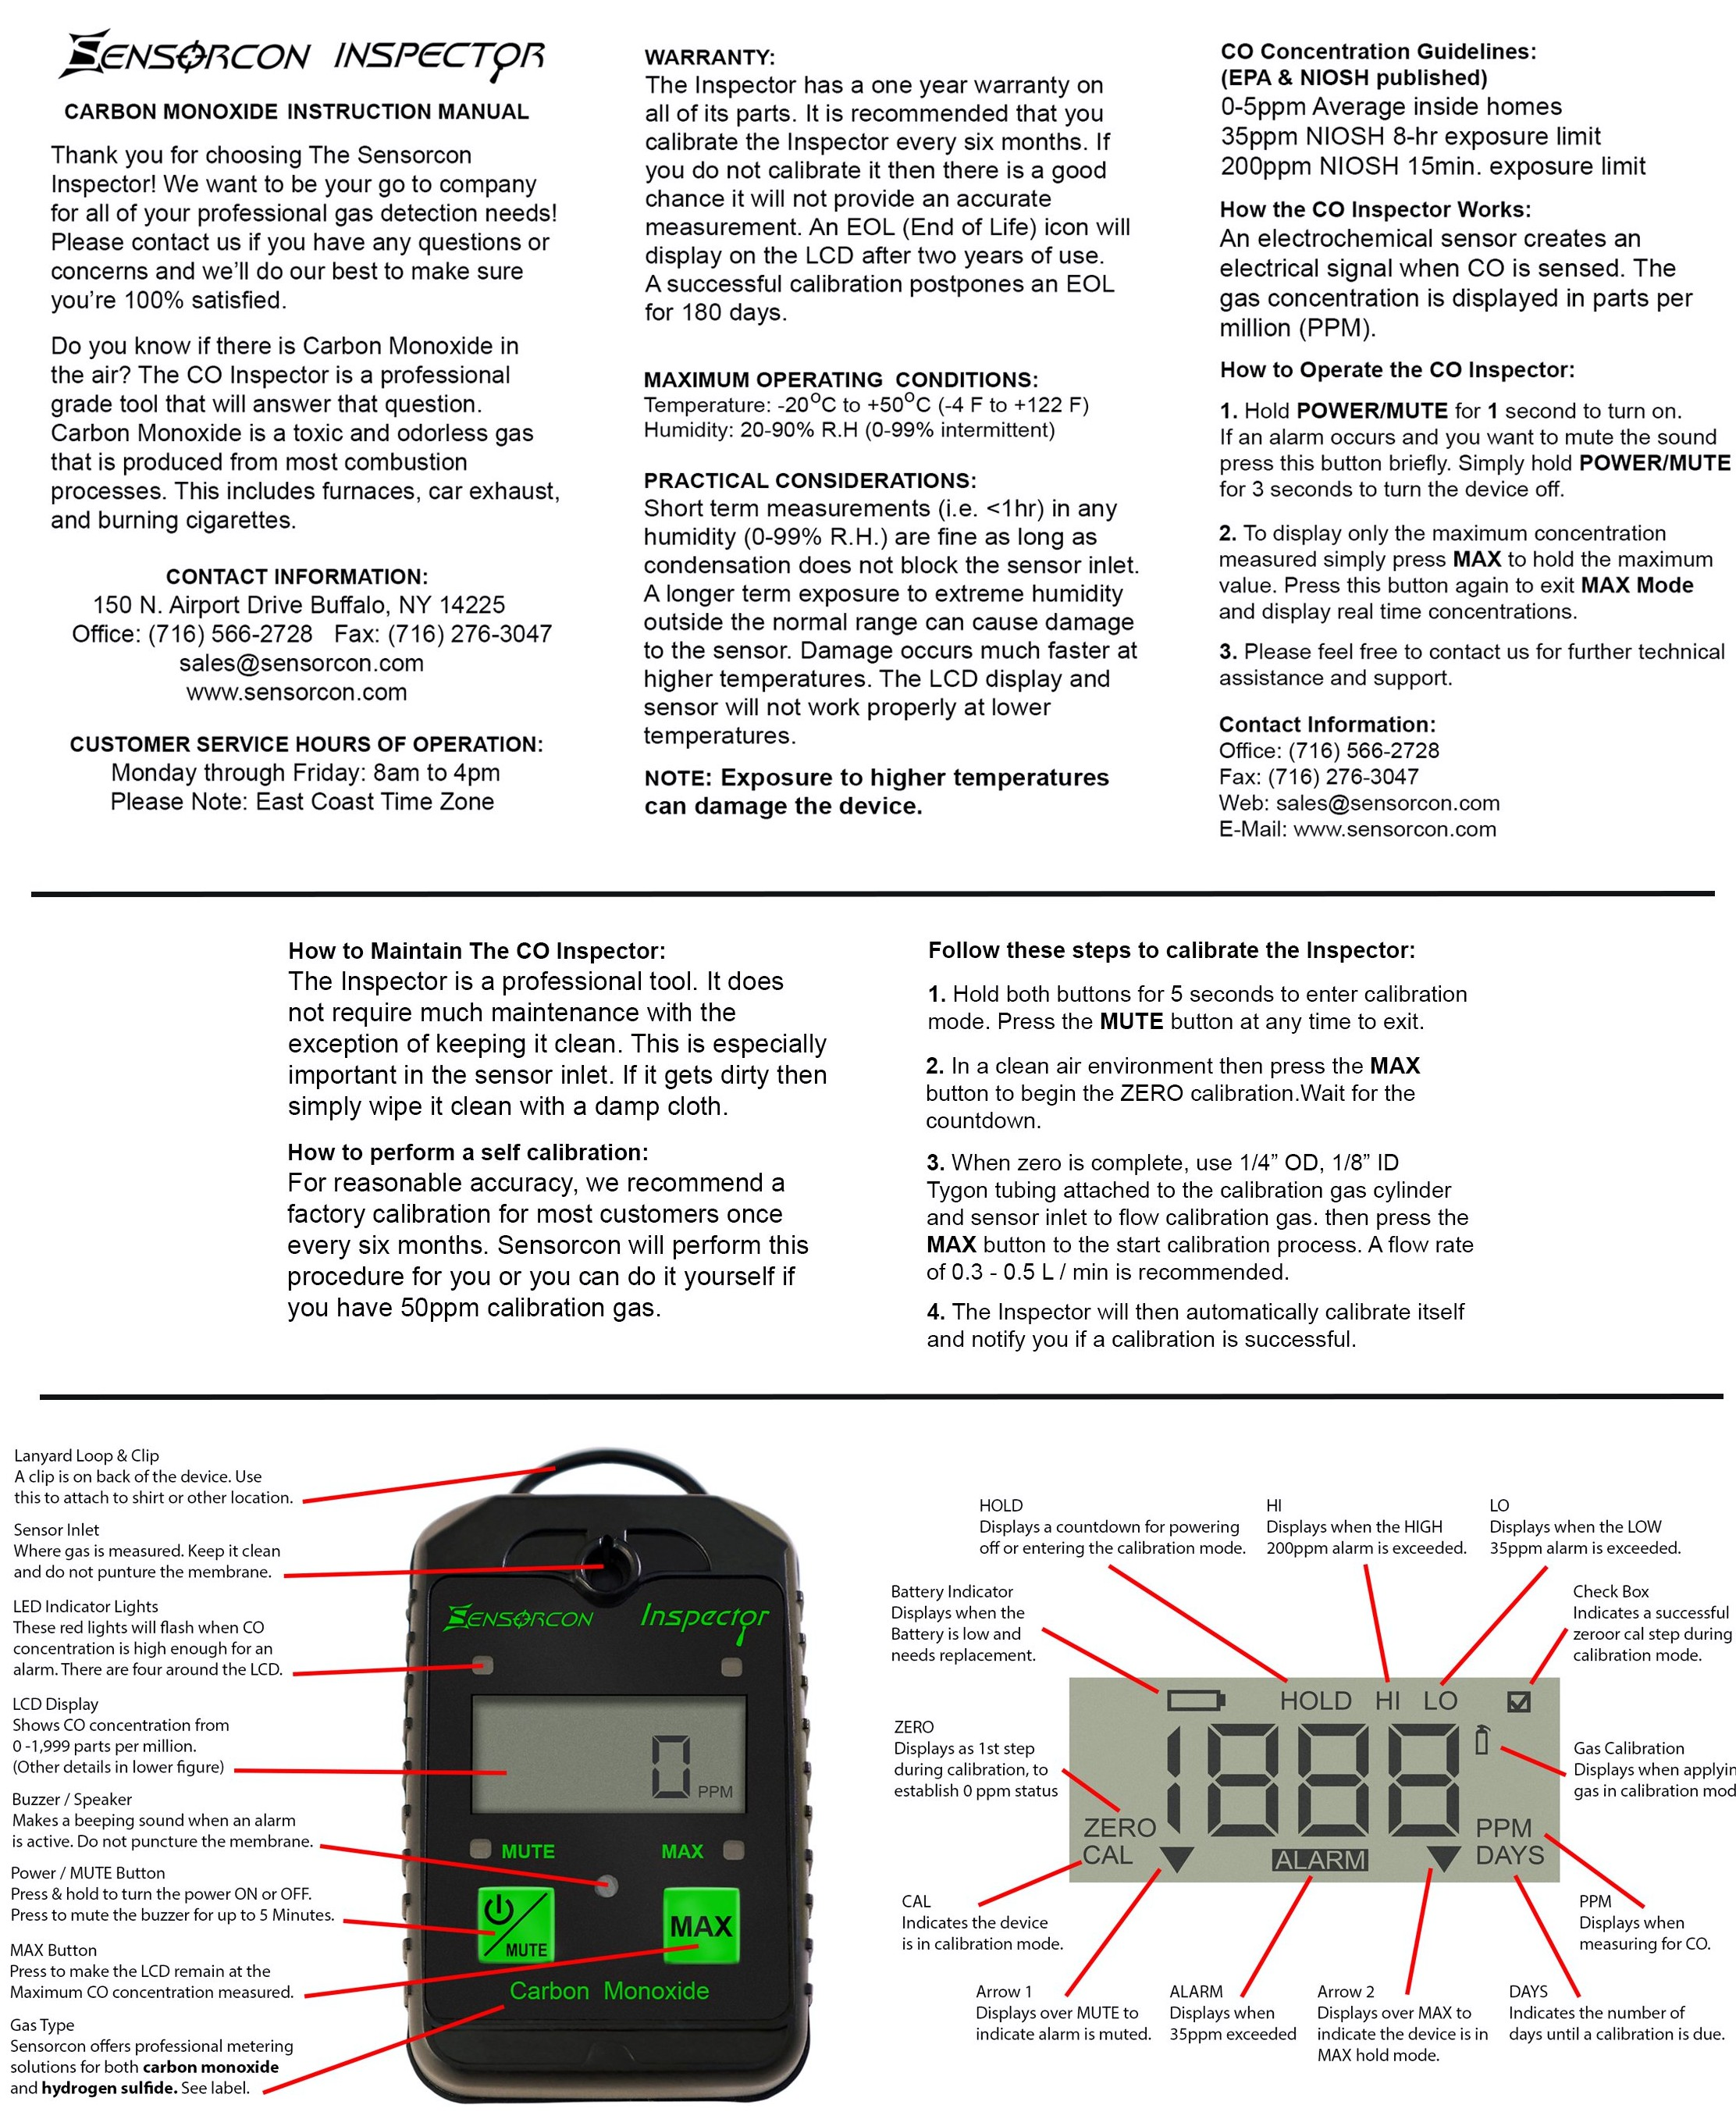 Sensorcon_Portable_Carbon_Monoxide_Detector_Online_Shipping_User_Manual_V2